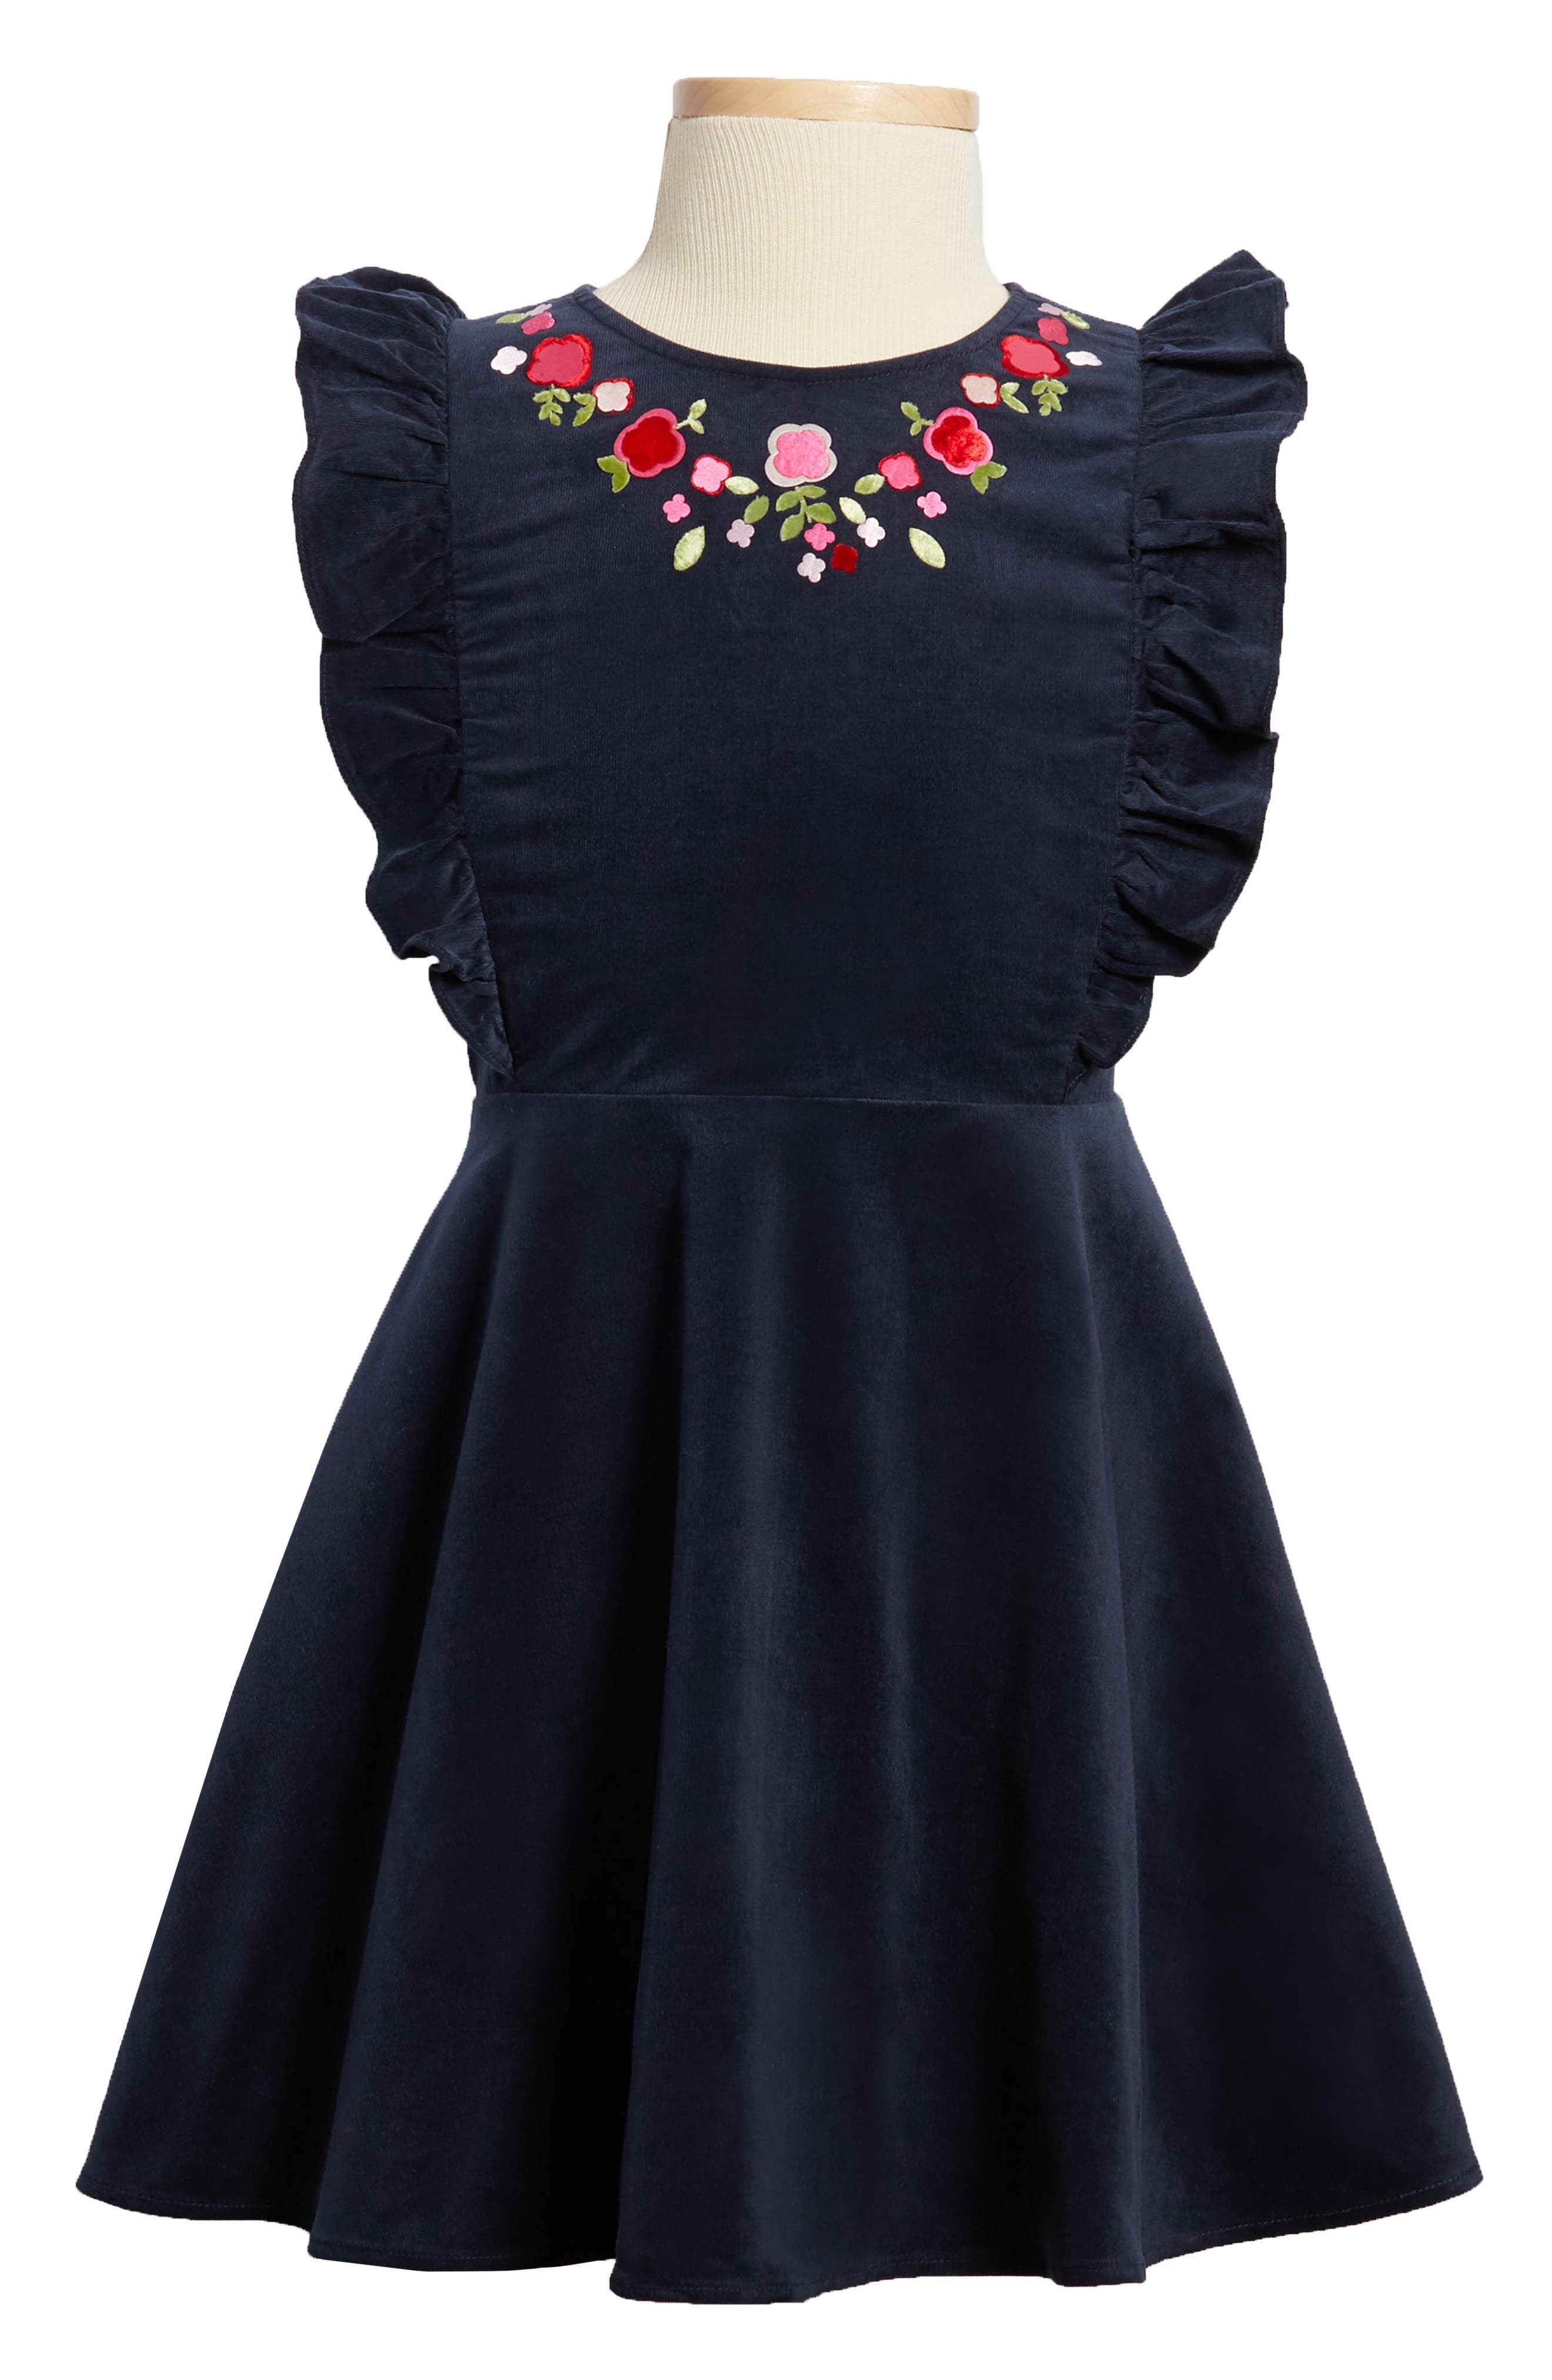 Floral Embroidered Corduroy Dress,                             Main thumbnail 1, color,                             Regal